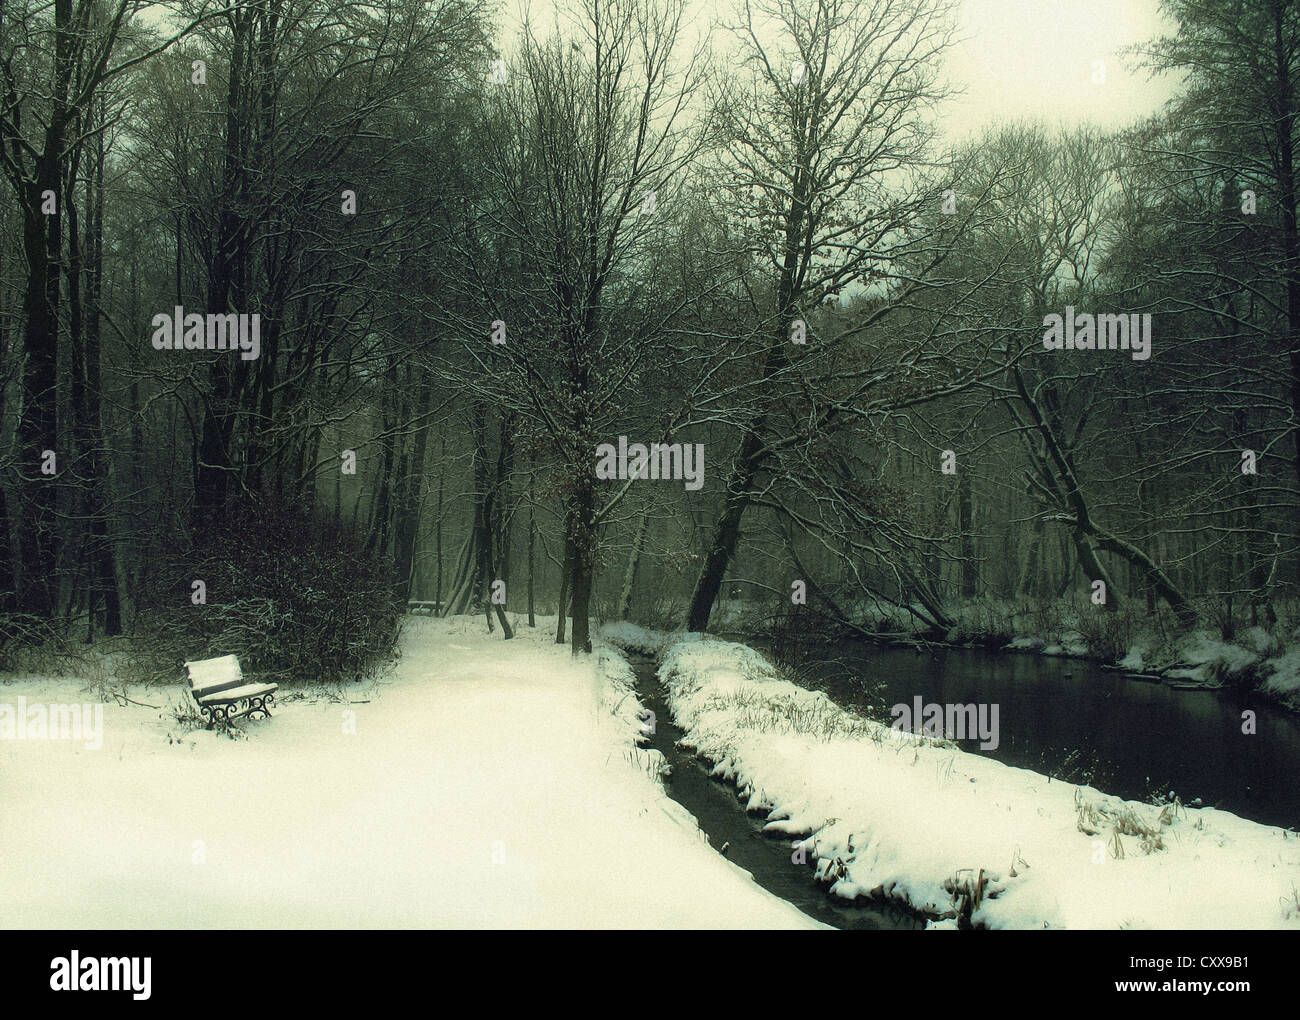 A landscape with a wood or garden in winter, a little bench on the left, covered with snow, and a river bank on - Stock Image